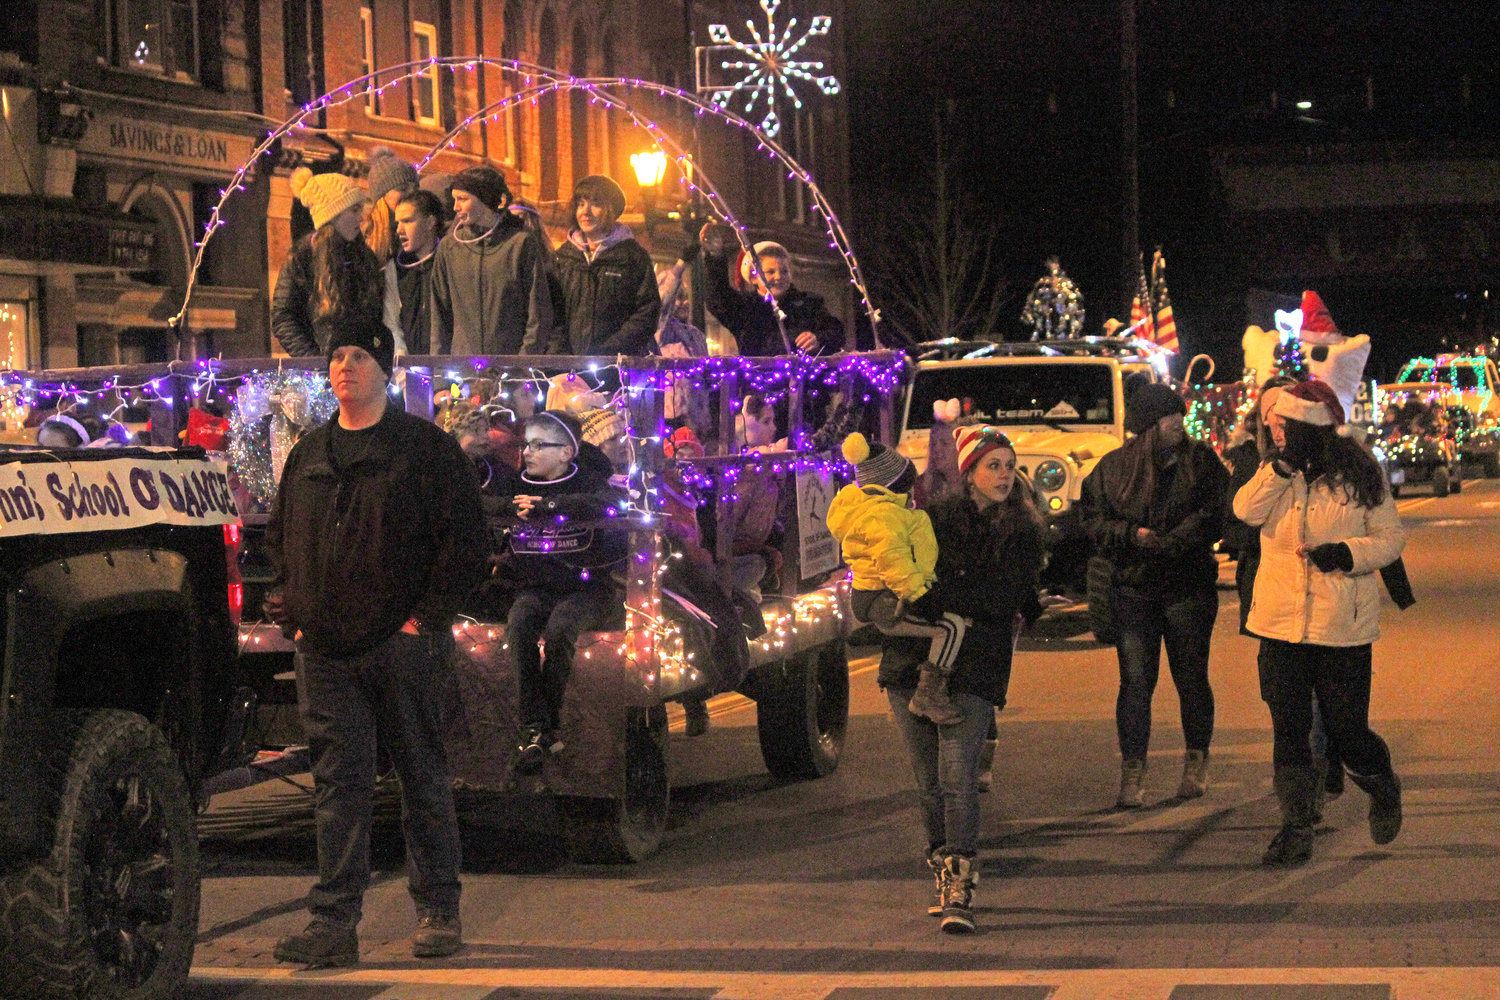 SEASONS GREETINGS — Towns, villages and organizations from all over join in to welcome in the season of giving for the second annual Canastota Parade of Lights on Saturday, Nov. 30.